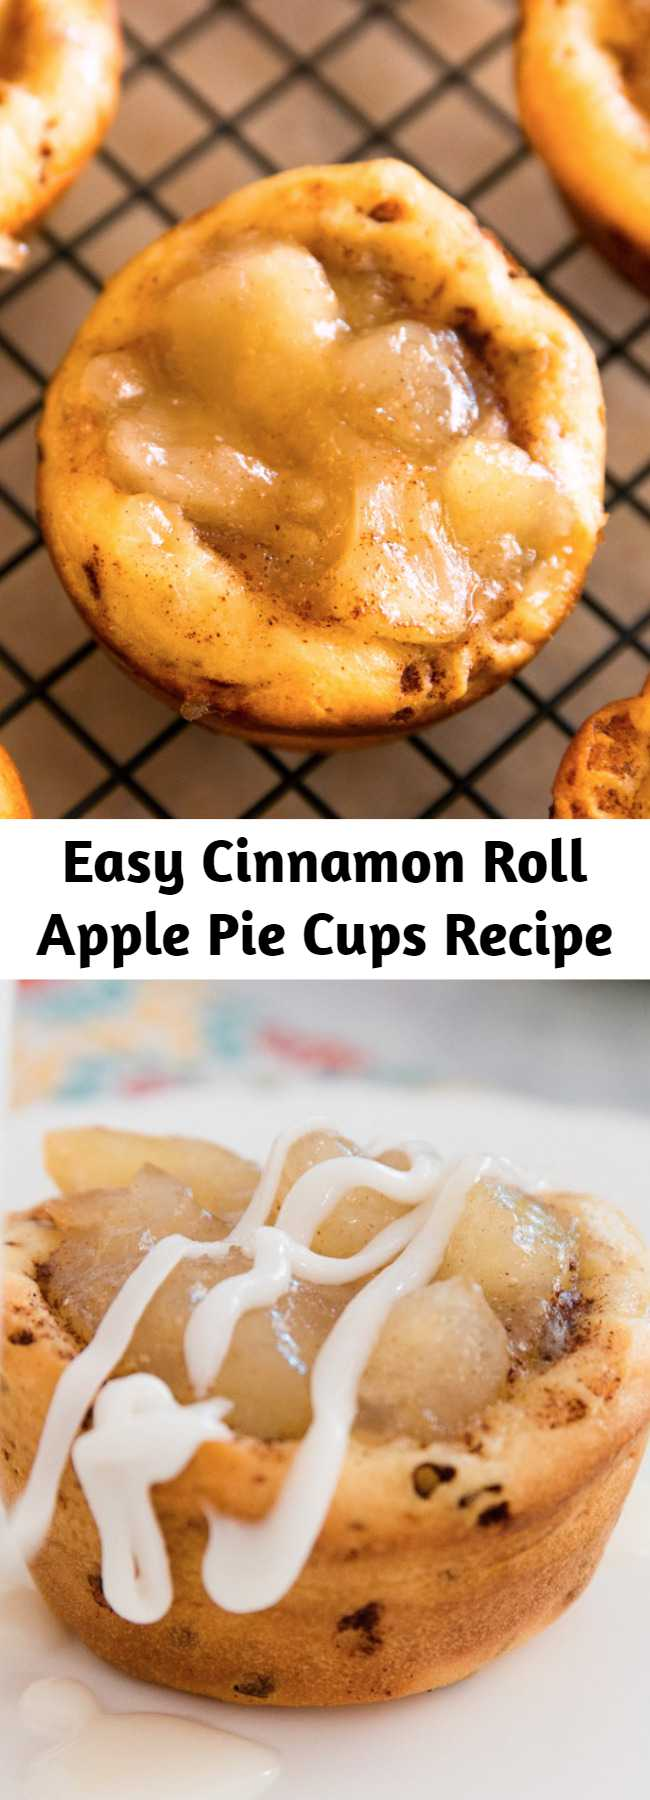 Easy Cinnamon Roll Apple Pie Cups Recipe - These Cinnamon Roll Apple Pie Cups are always a hit with their pillowy soft crust and velvety filling! This easy apple dessert needs just 3 ingredients and is ready in 25 minutes. They're fabulous anytime and perfect for parties, potlucks and holidays!